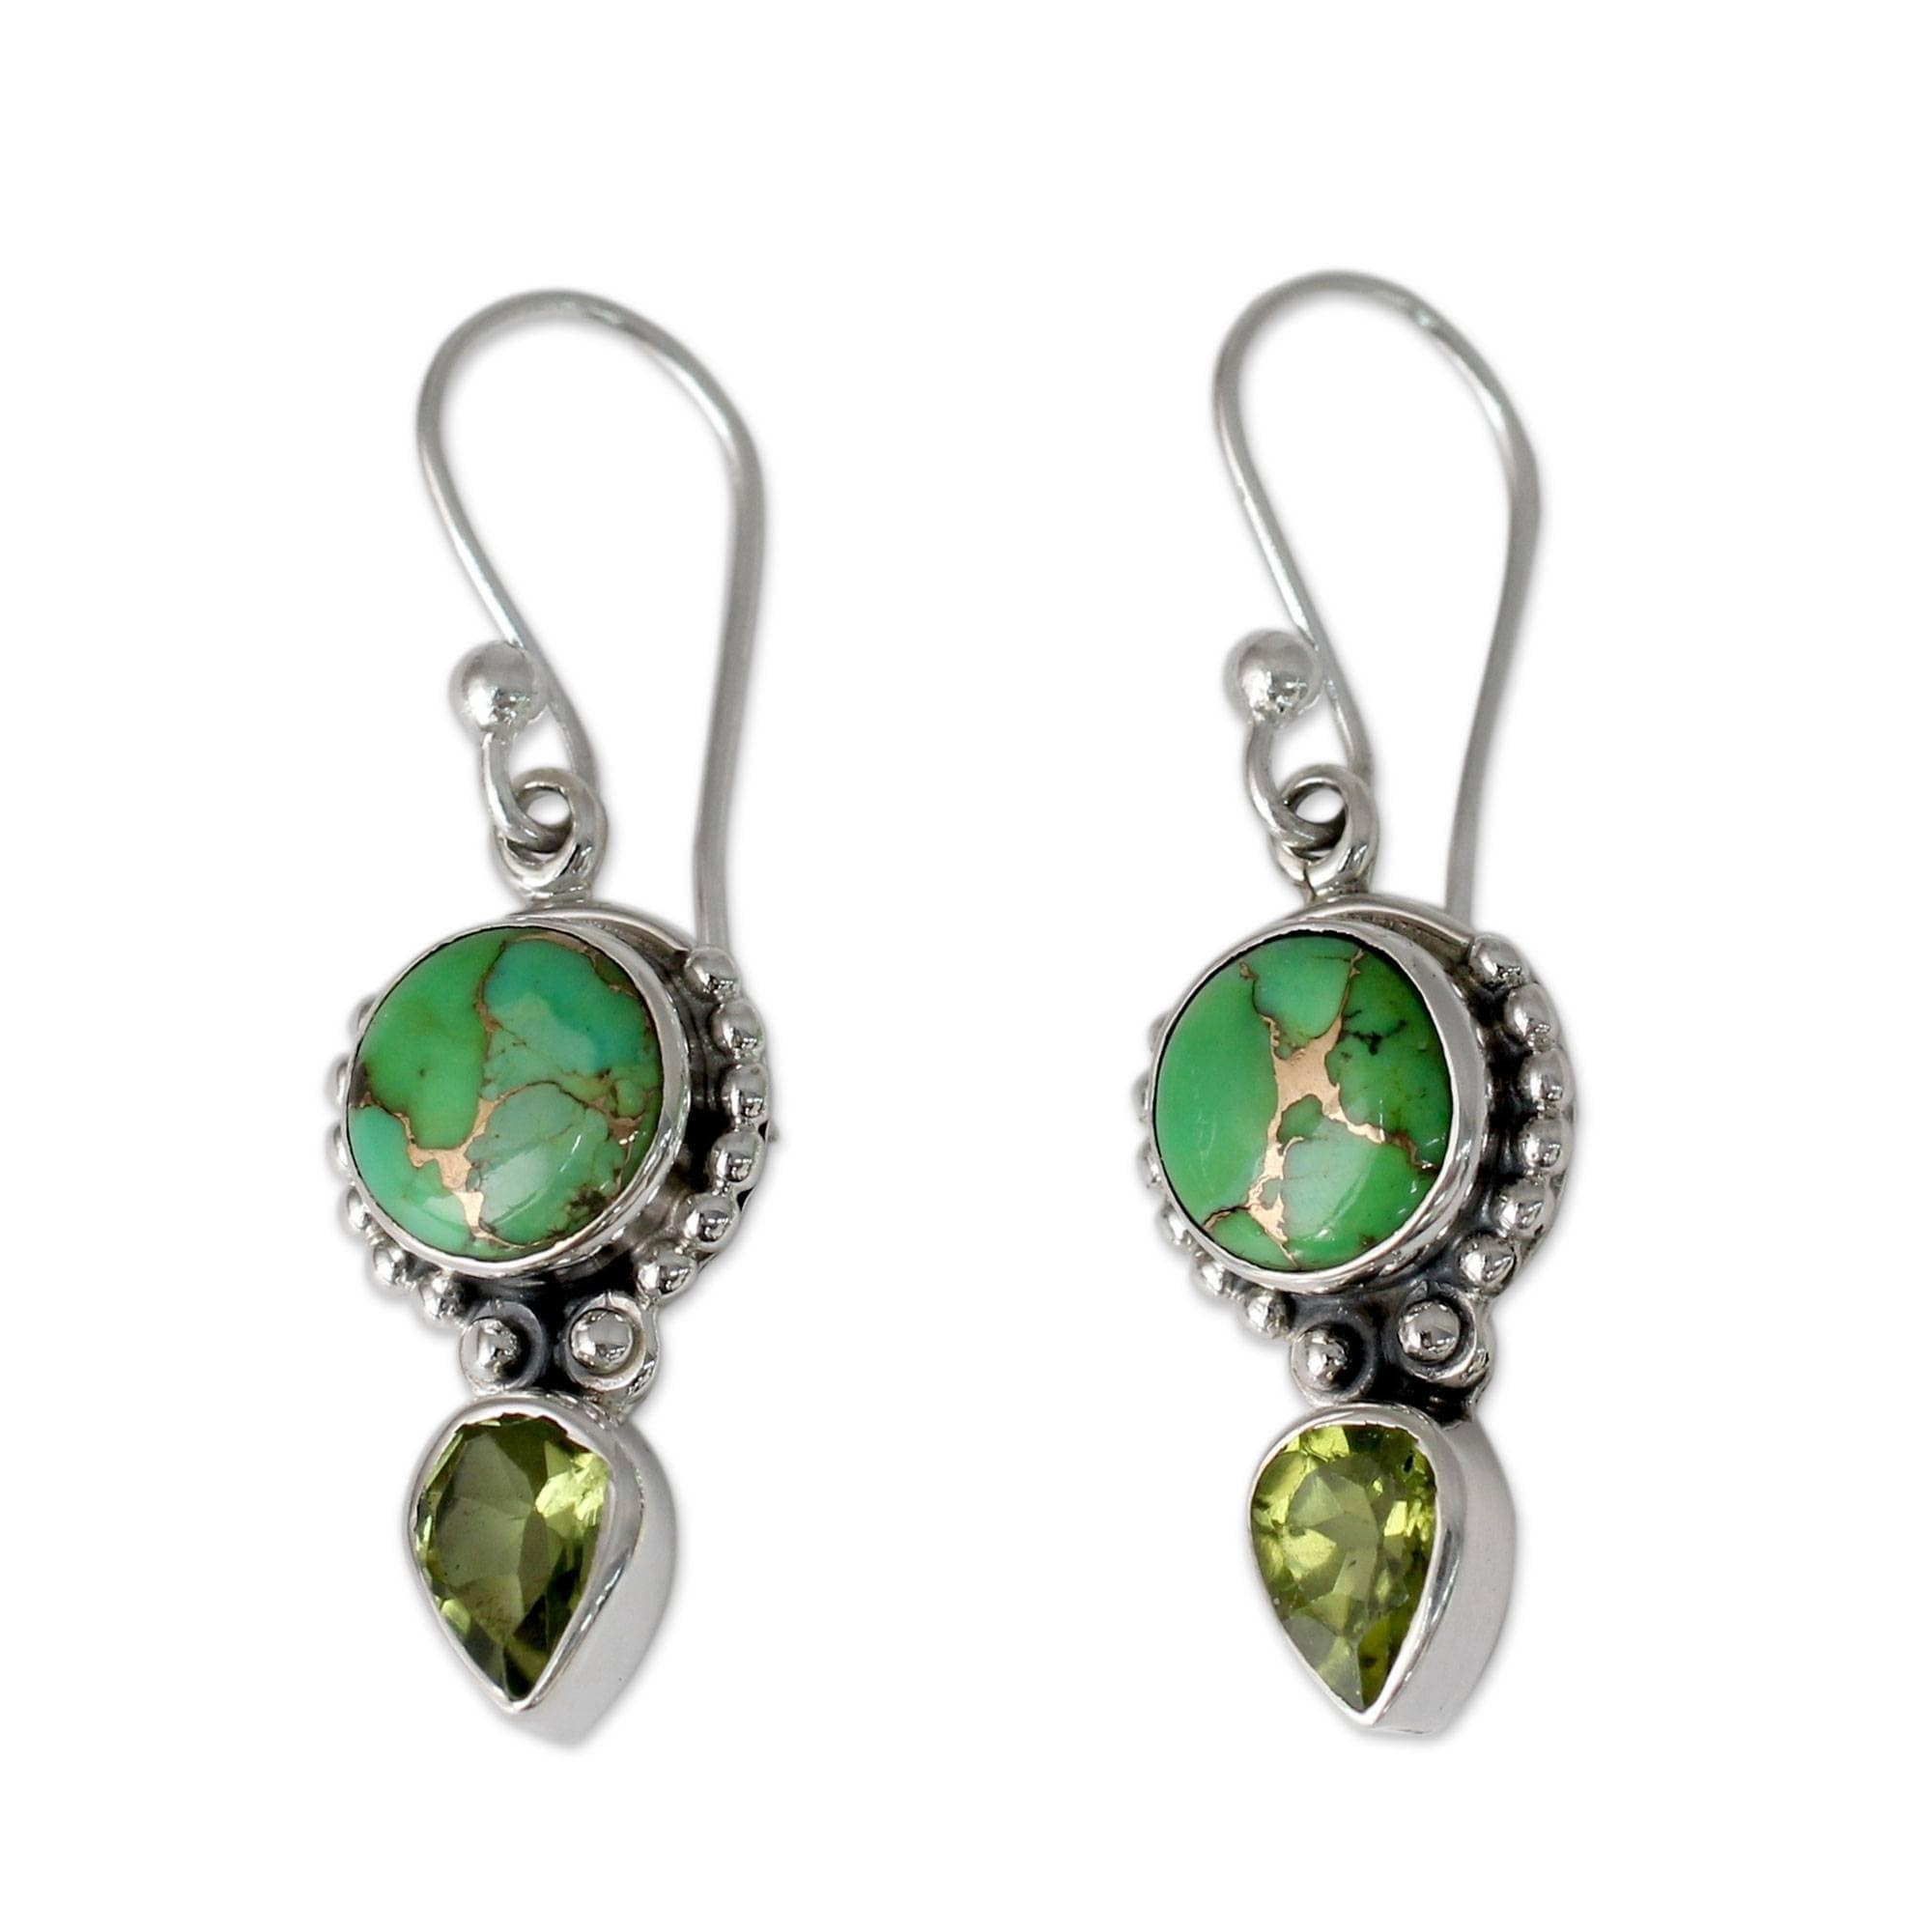 a6b021aa8 Handmade Sterling Silver Spring Green Peridot and Composite Turquoise  Earrings (India)